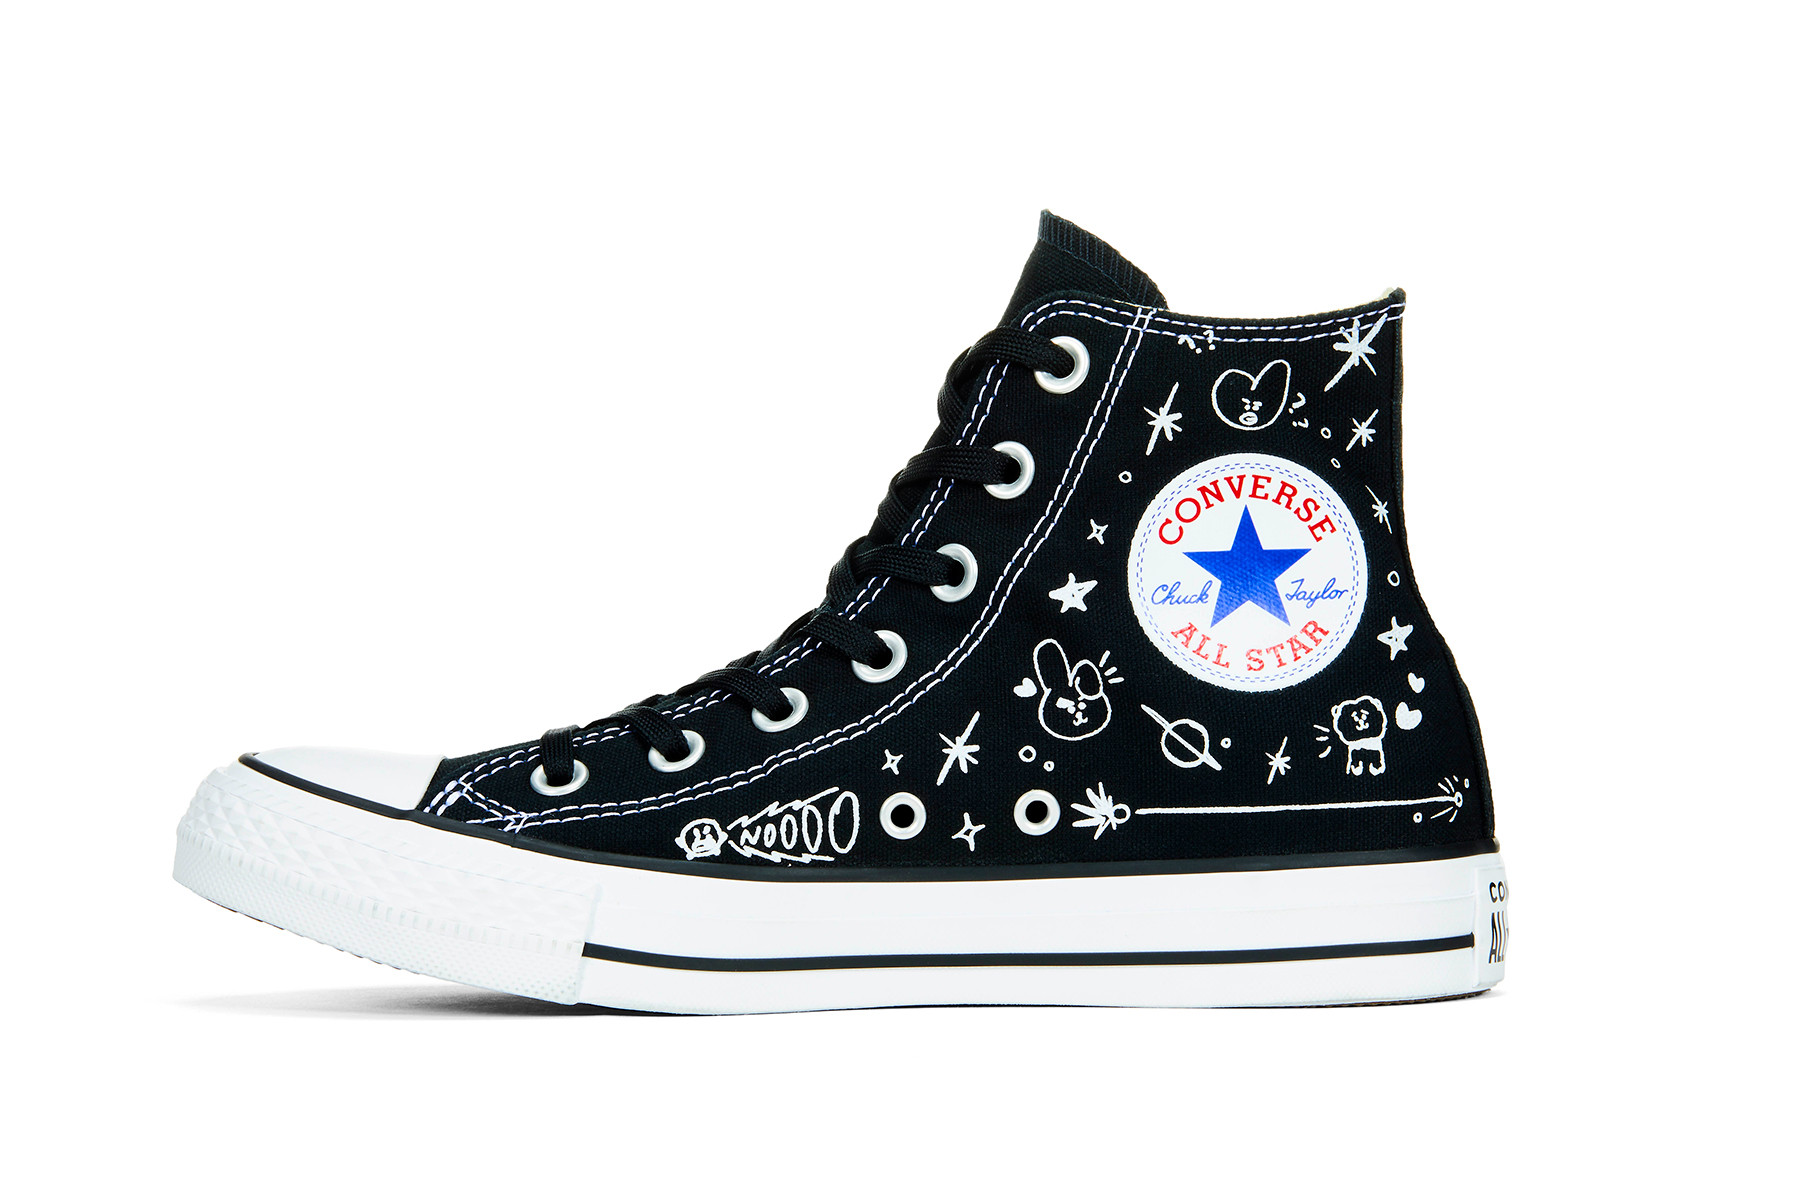 The holy ghost electric show : Converse x bt21 giá